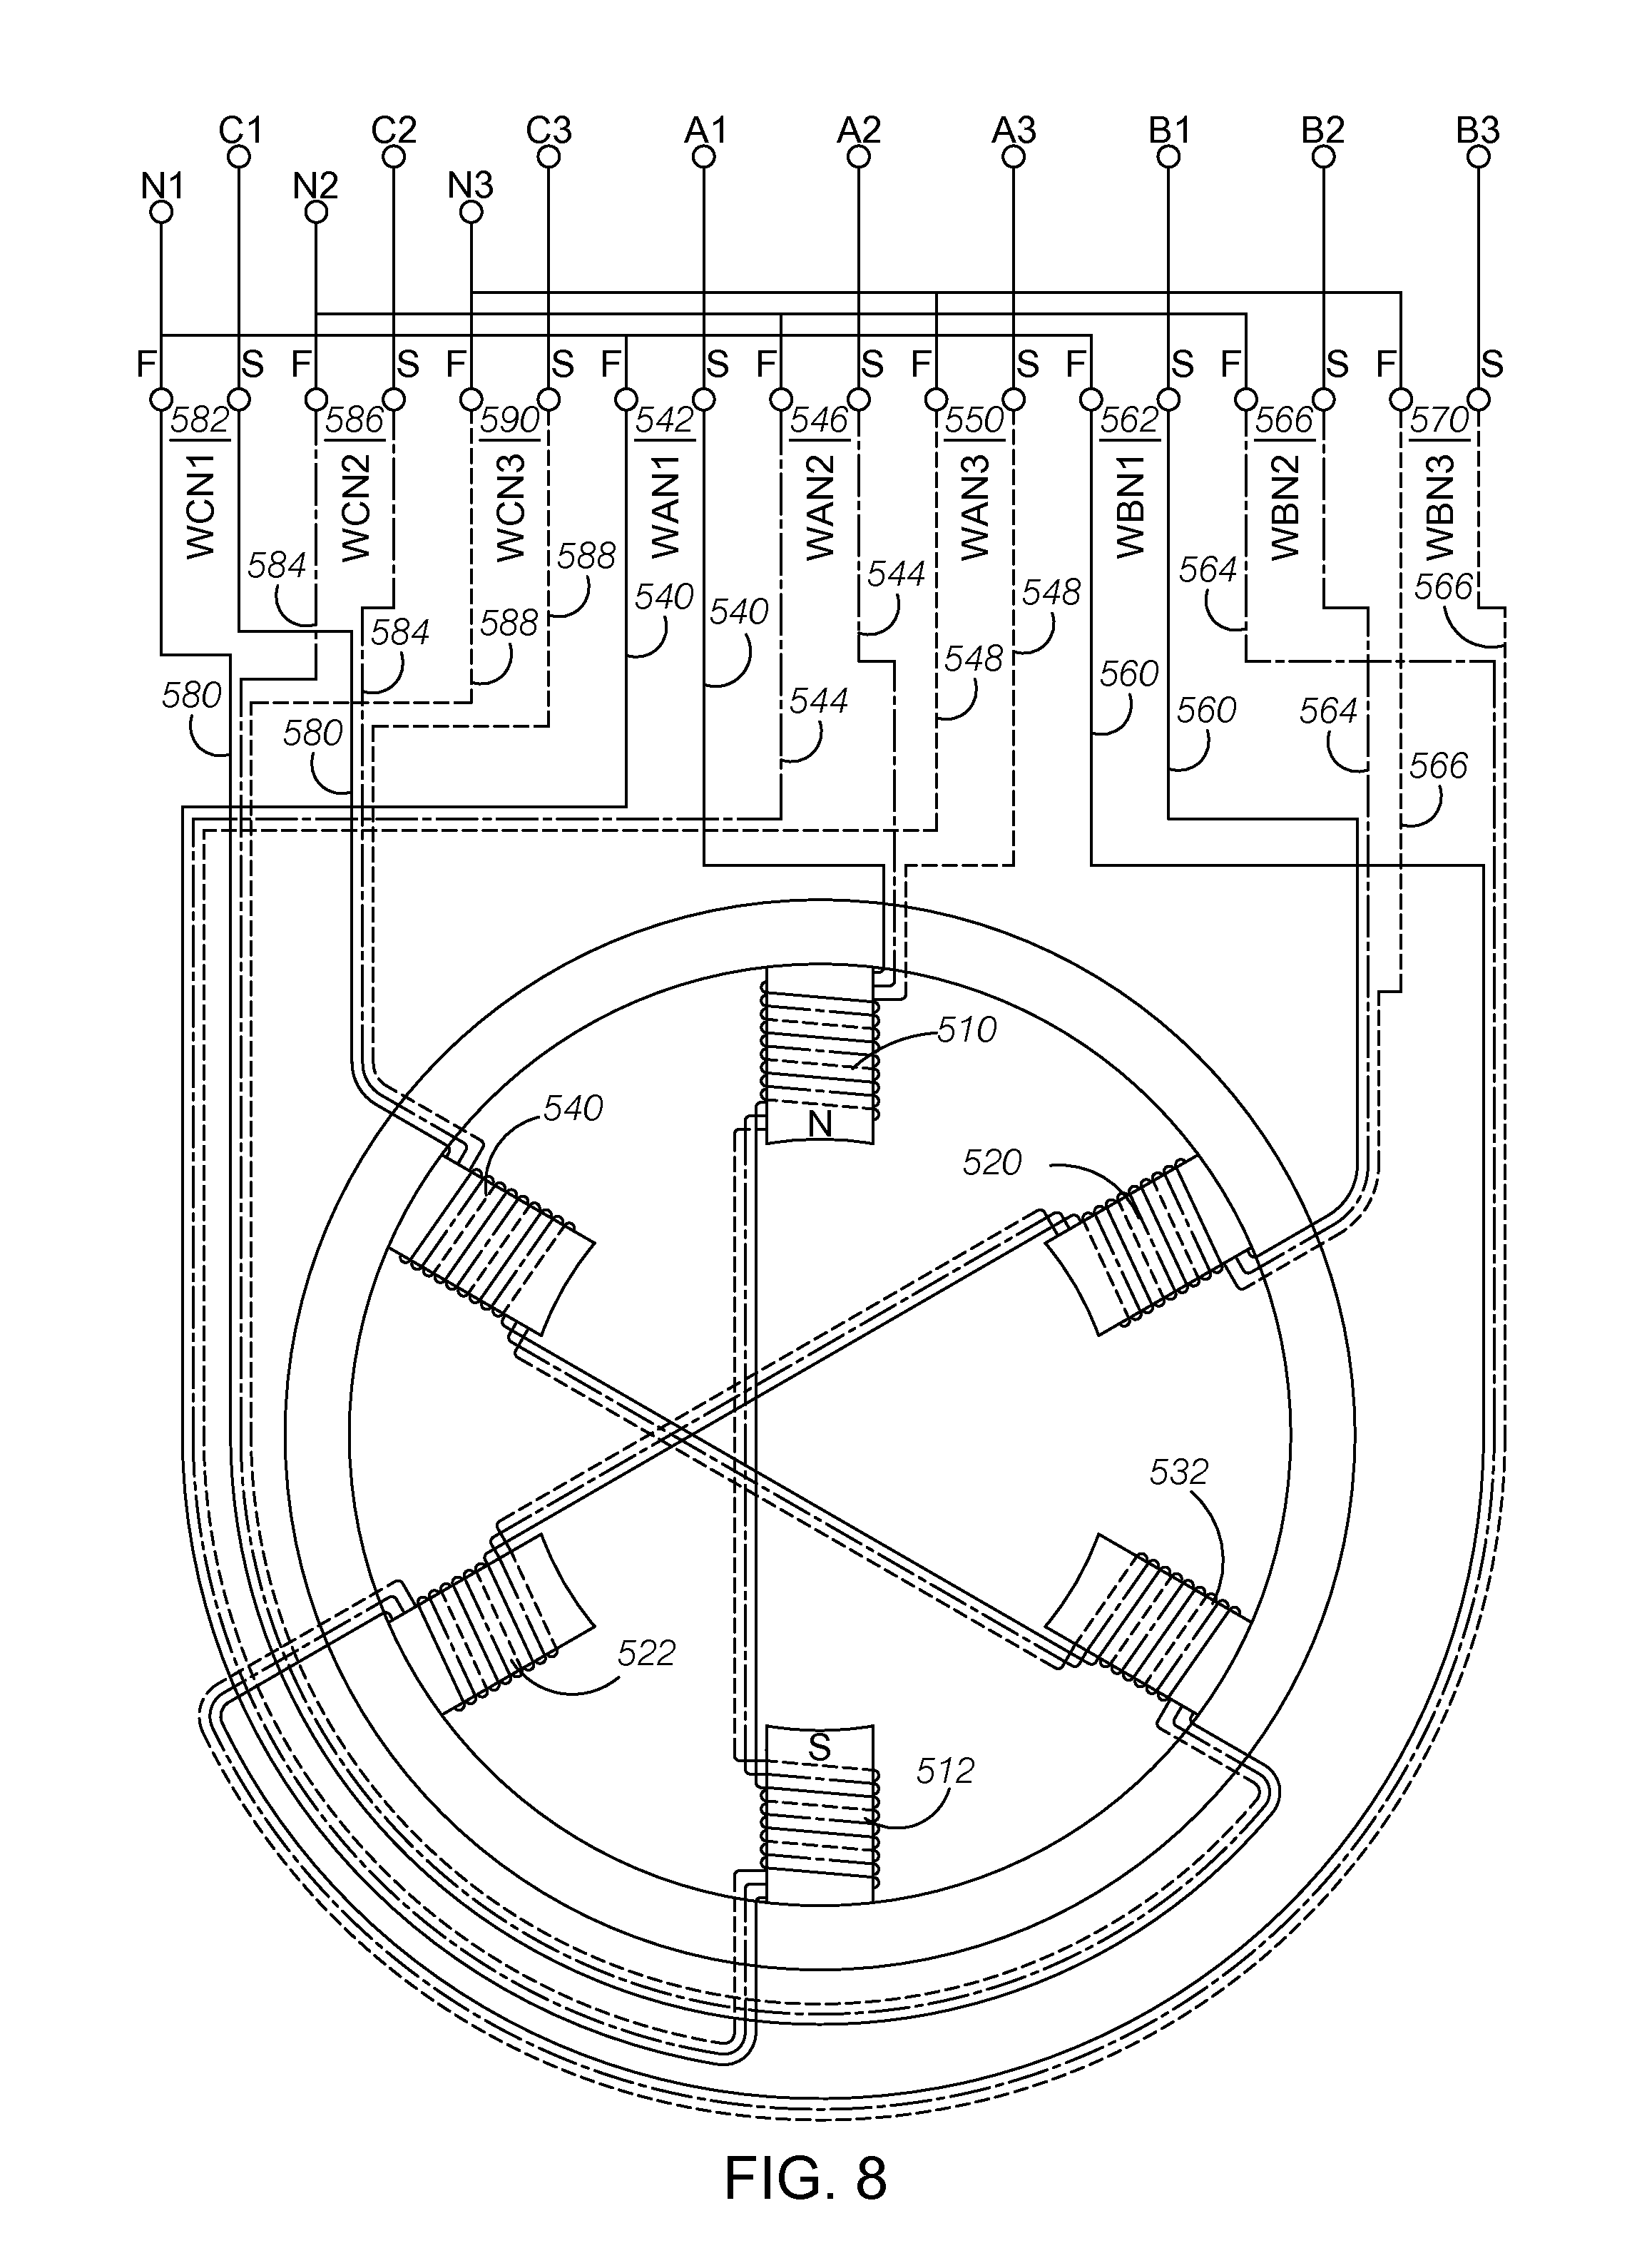 Motor Stator Winding Diagram